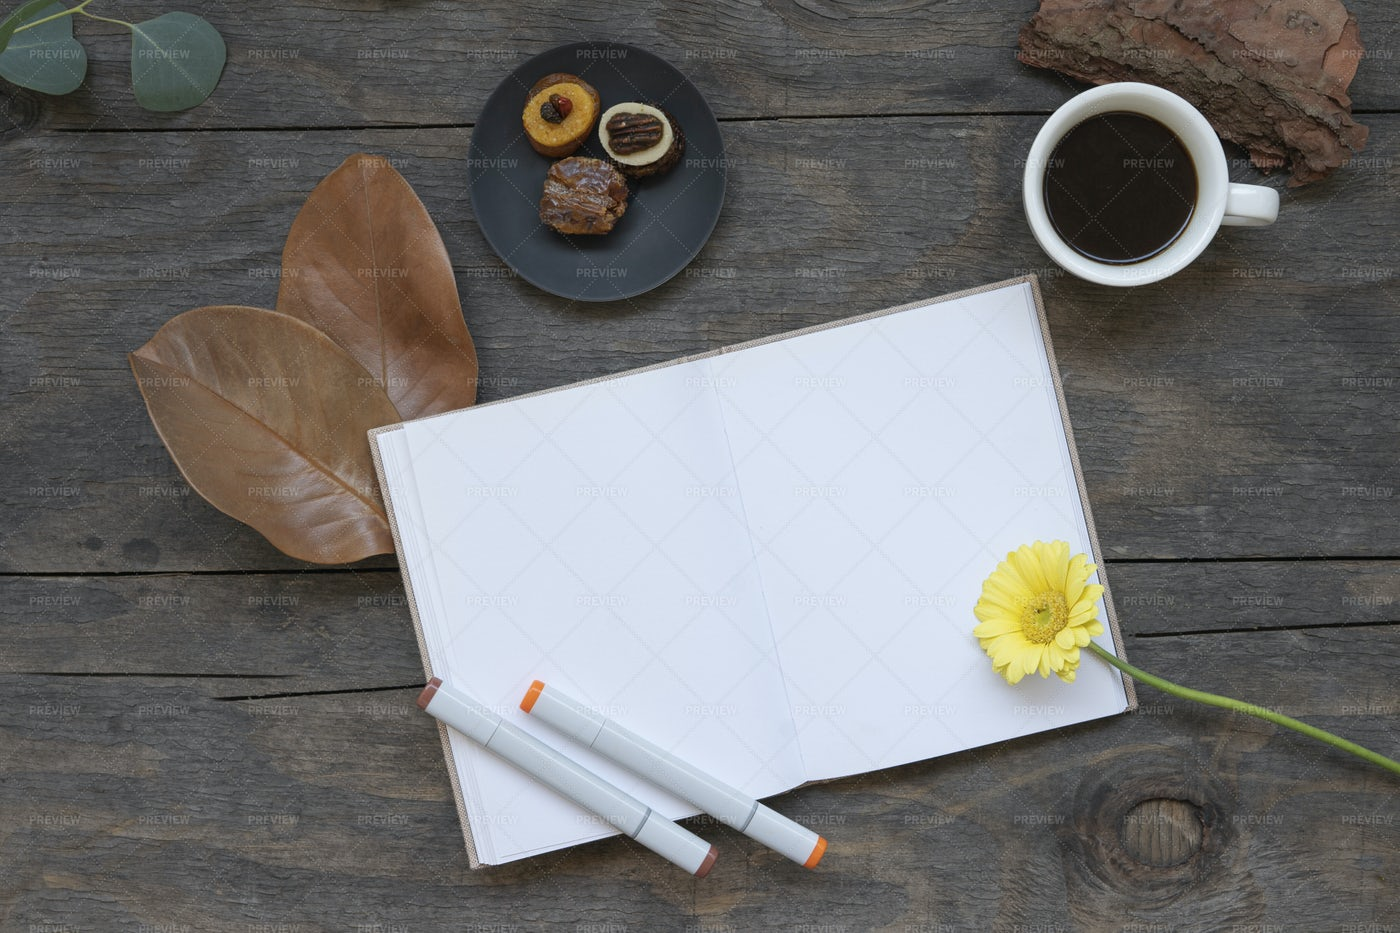 Blank Notebook And Coffee: Stock Photos